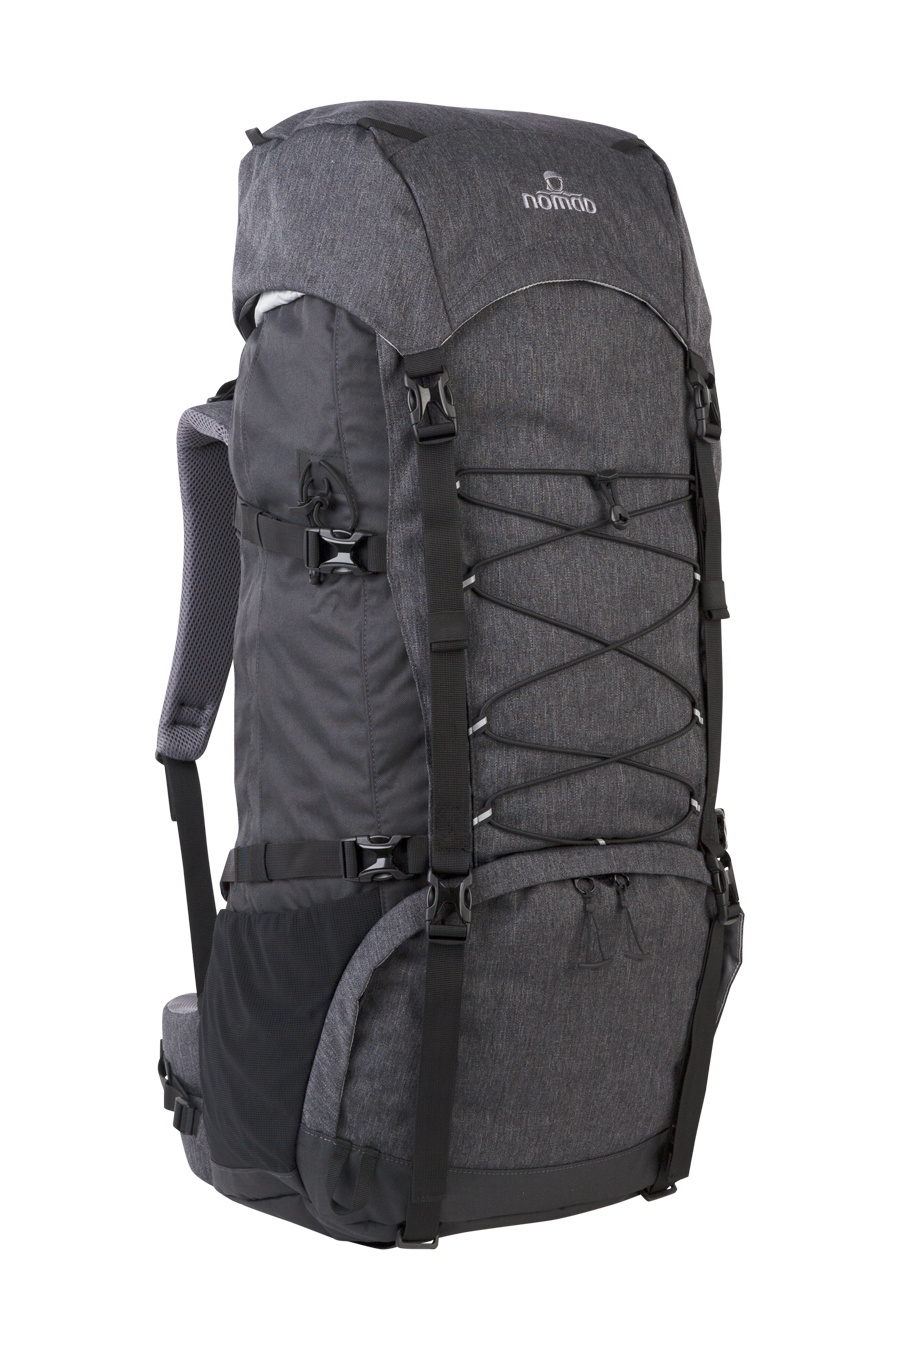 Nomad Karoo 60l backpack heren - Phantom